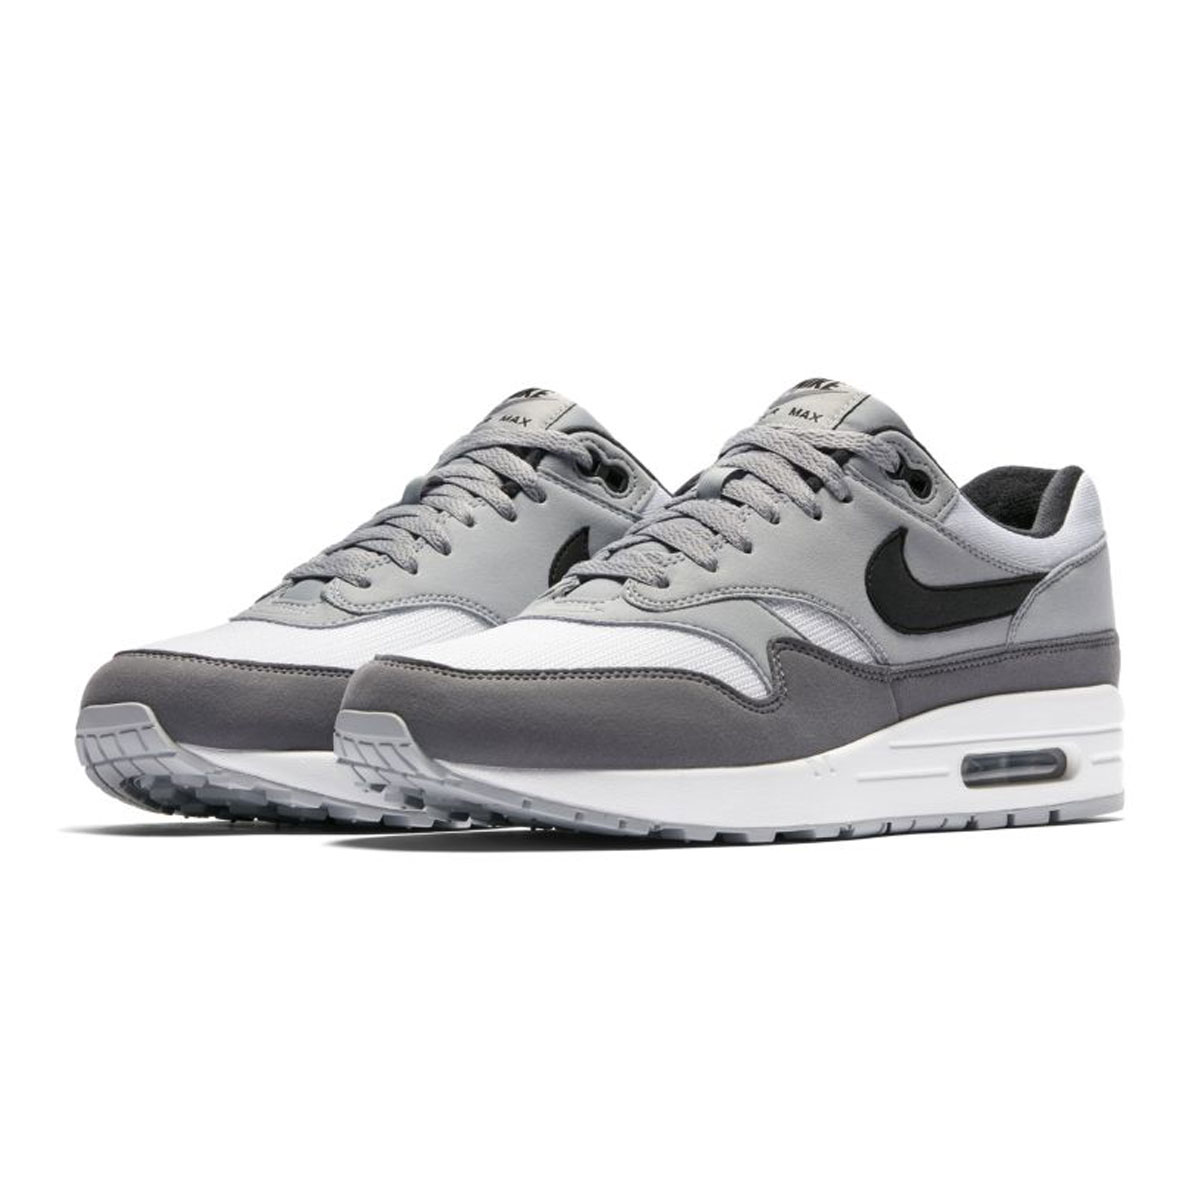 sports shoes bf2e2 602b4 NIKE AIR MAX 1 (Kie Ney AMAX 1) WHITE BLACK-WOLF GREY ...